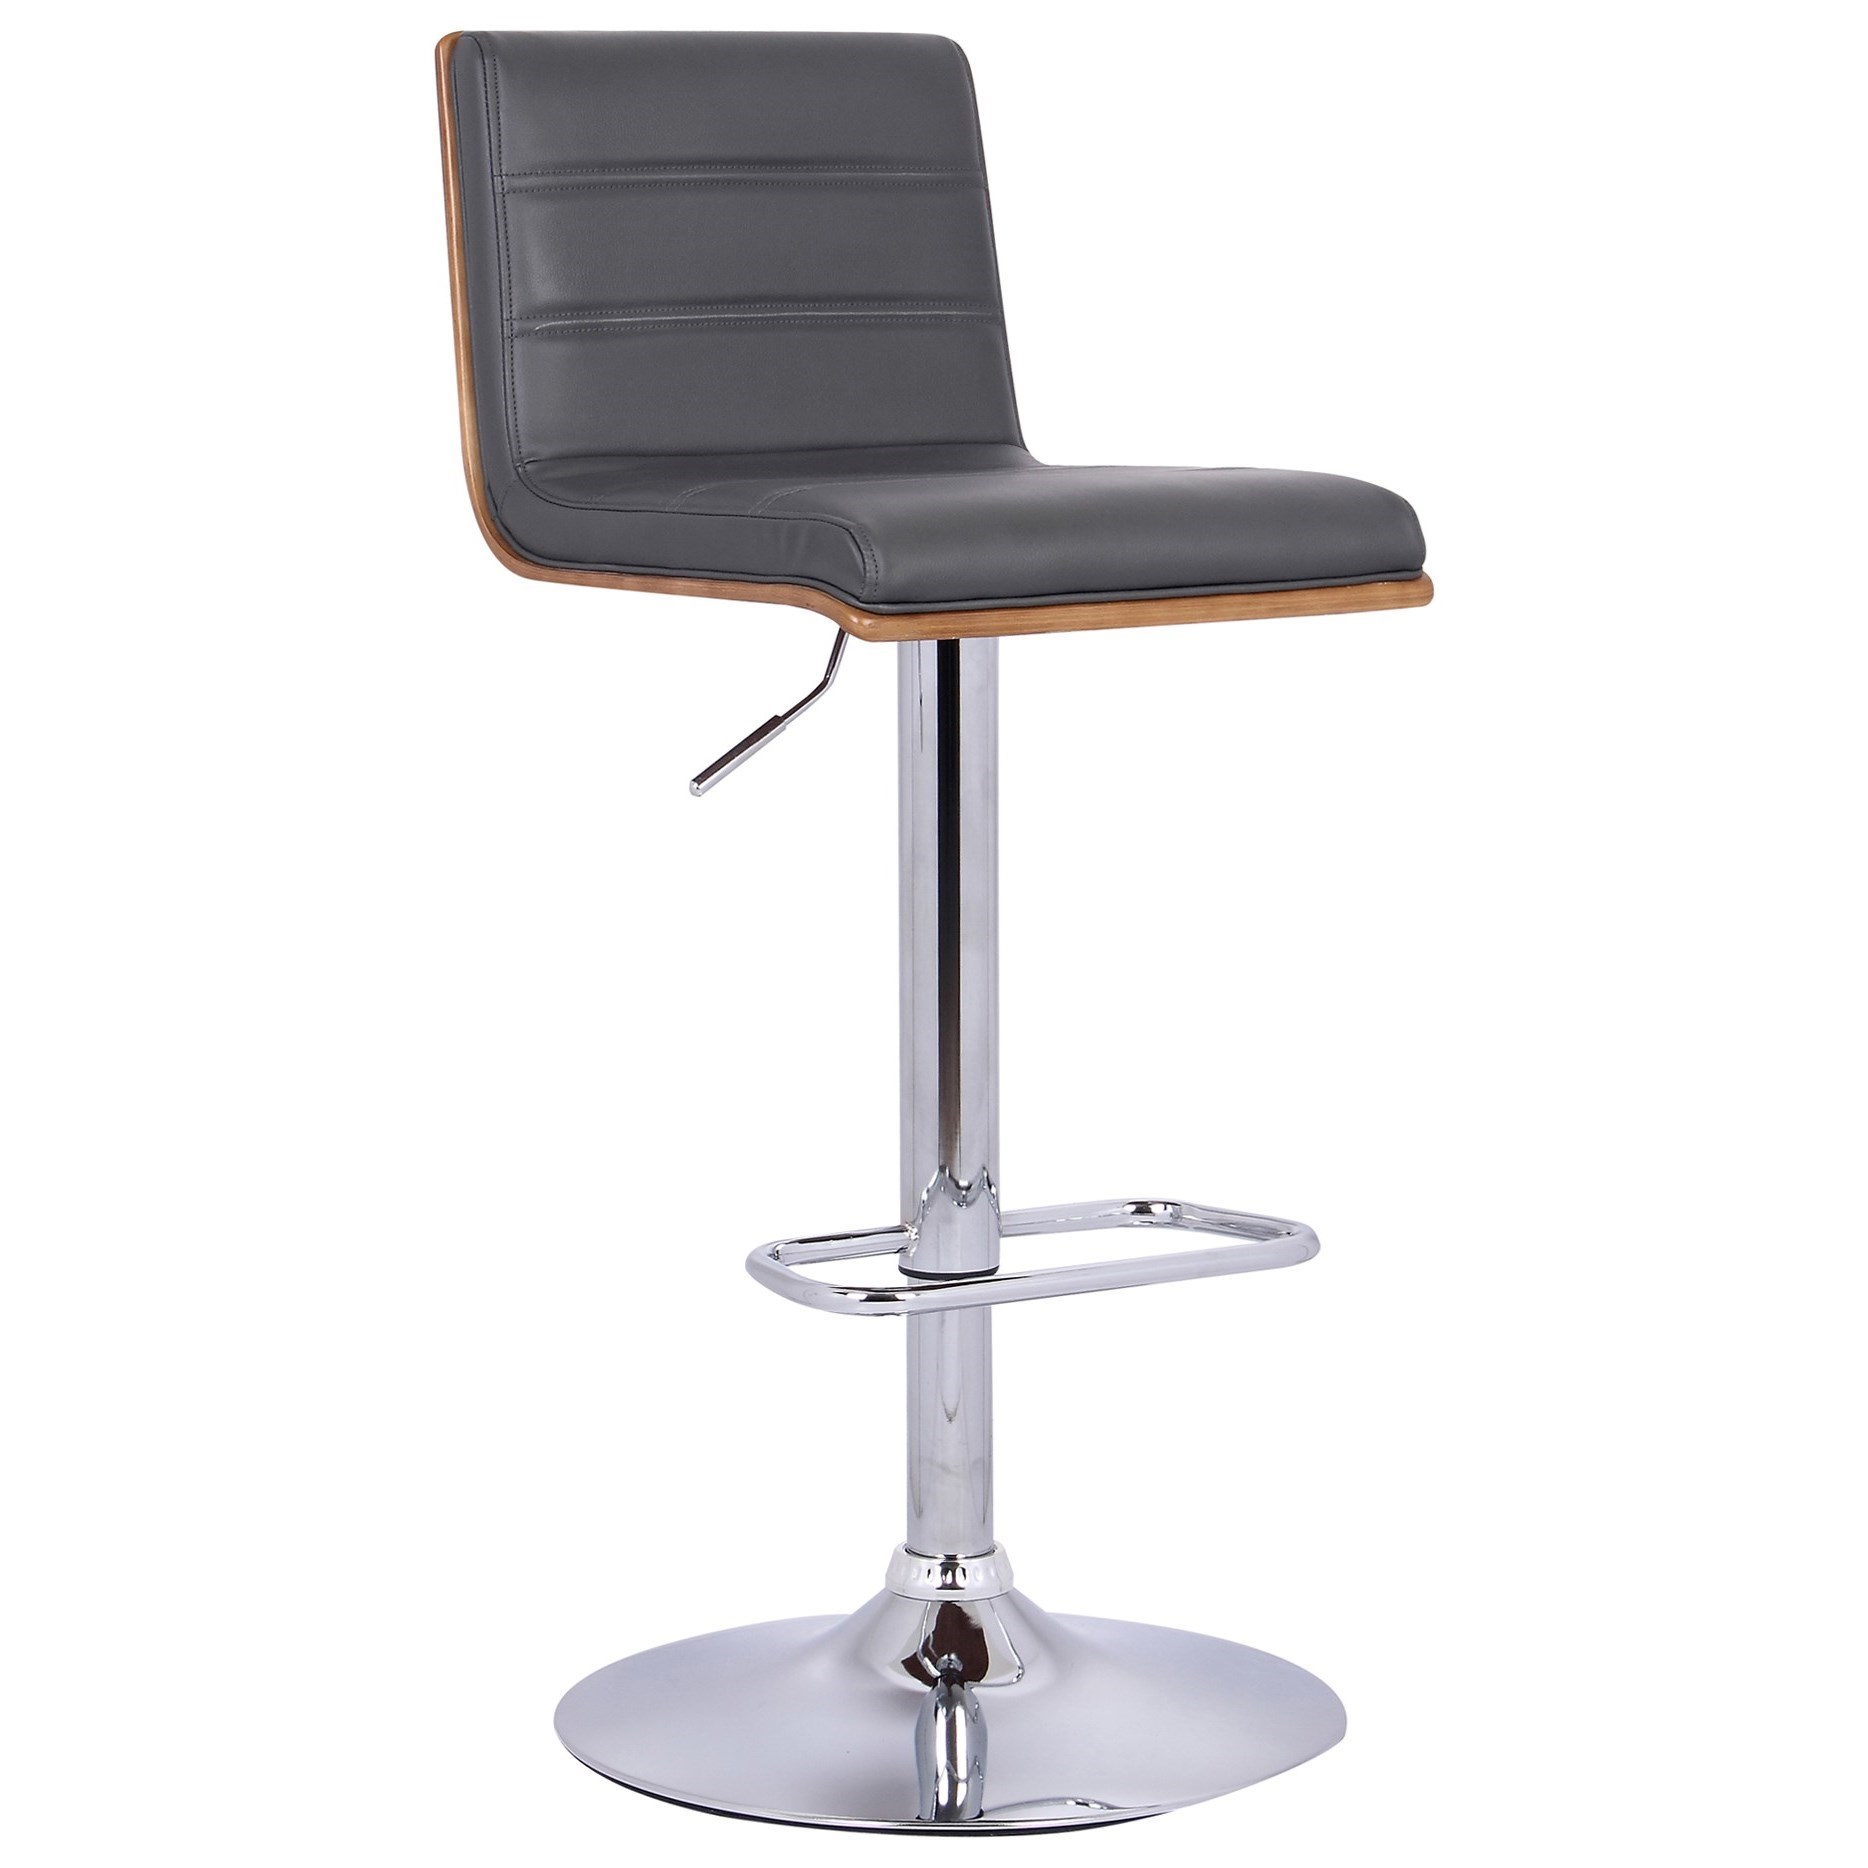 Aubrey Adjustable Swivel Barstool by Armen Living at Fisher Home Furnishings